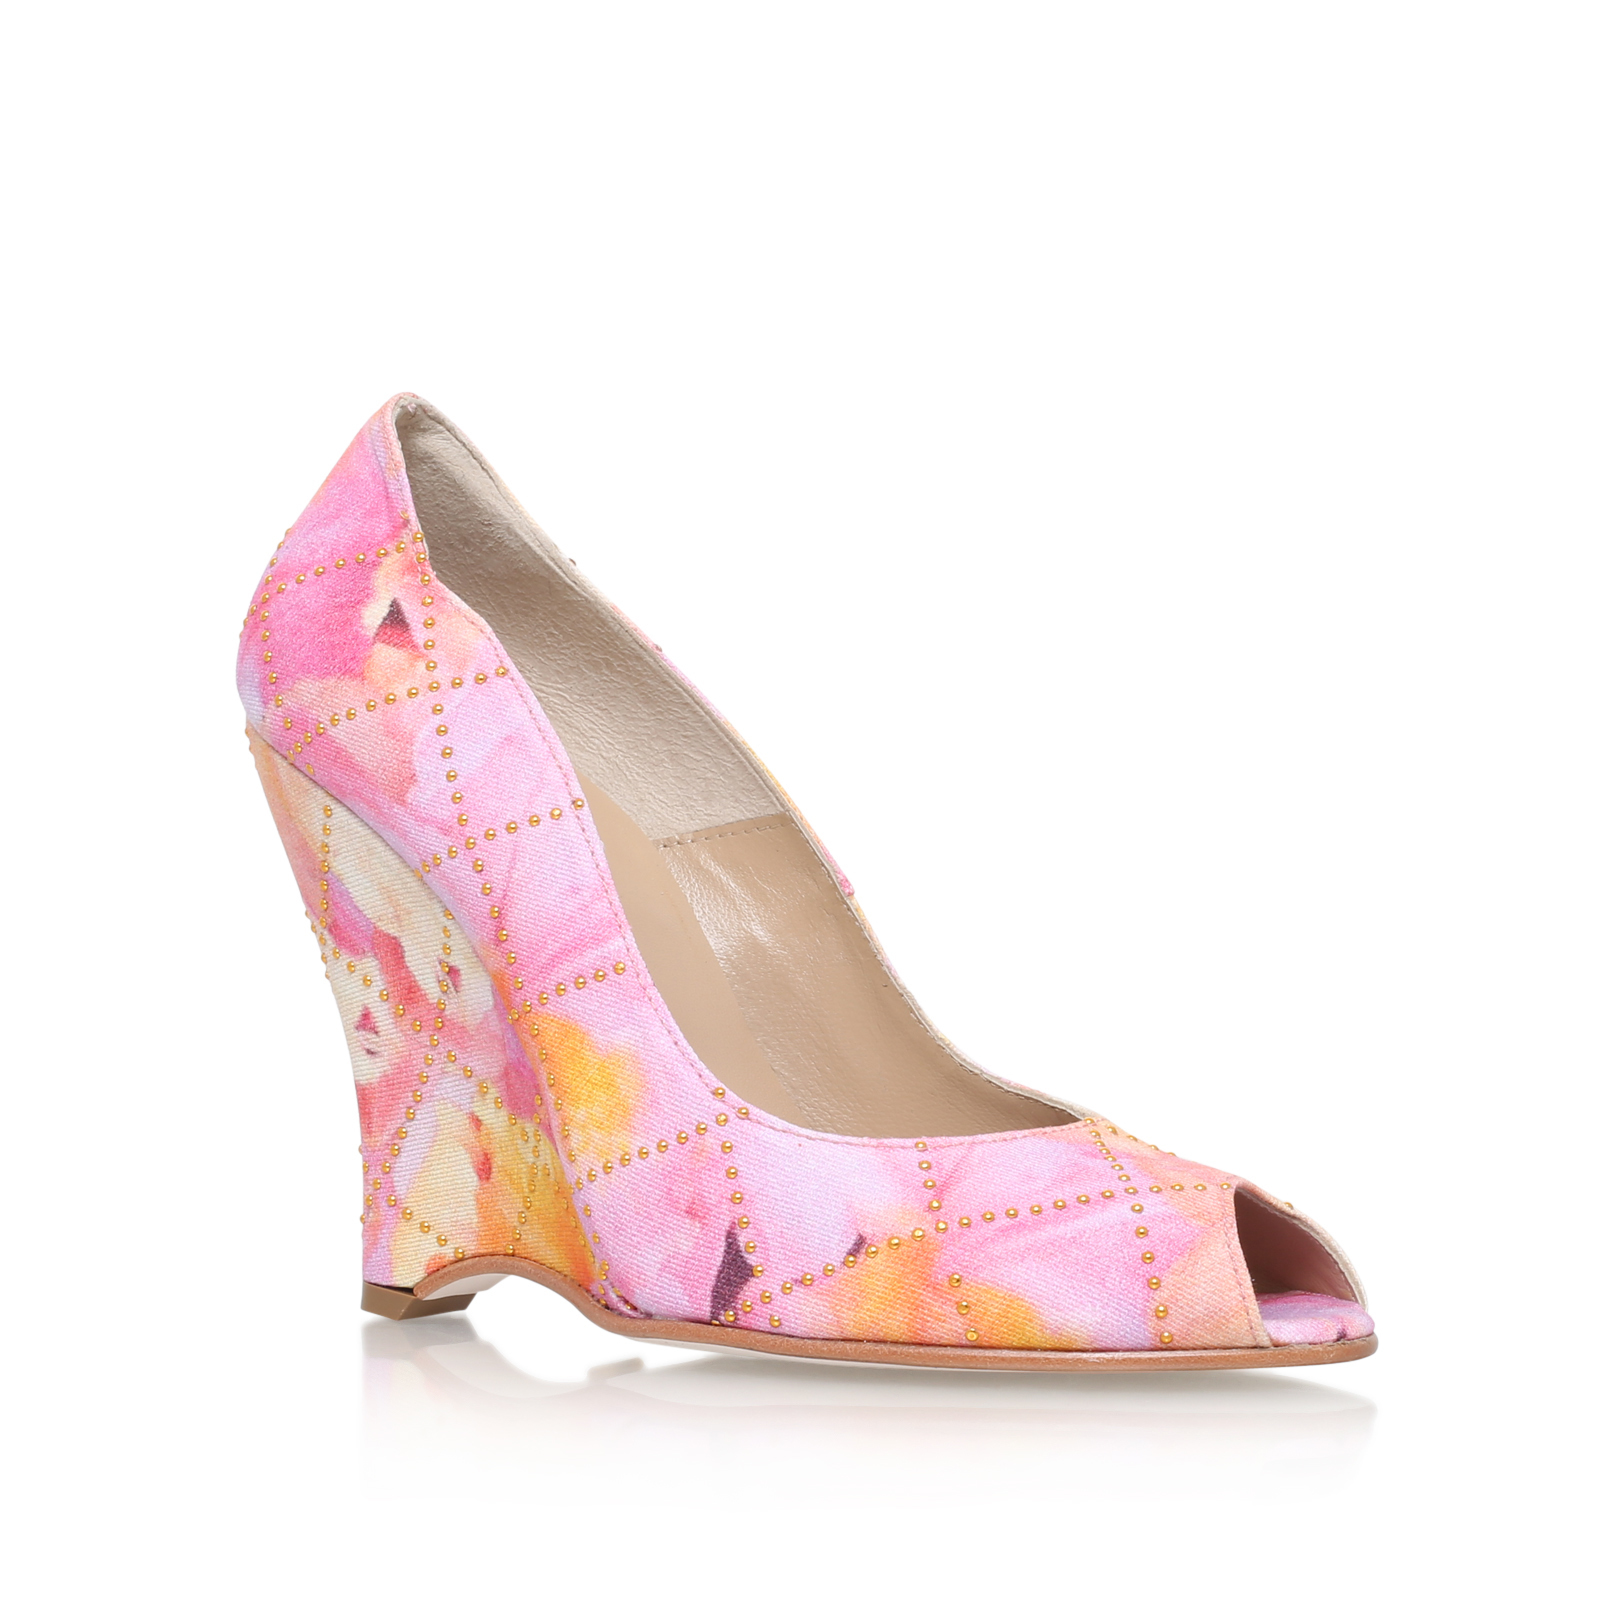 FLORAL SATIN WEDGE